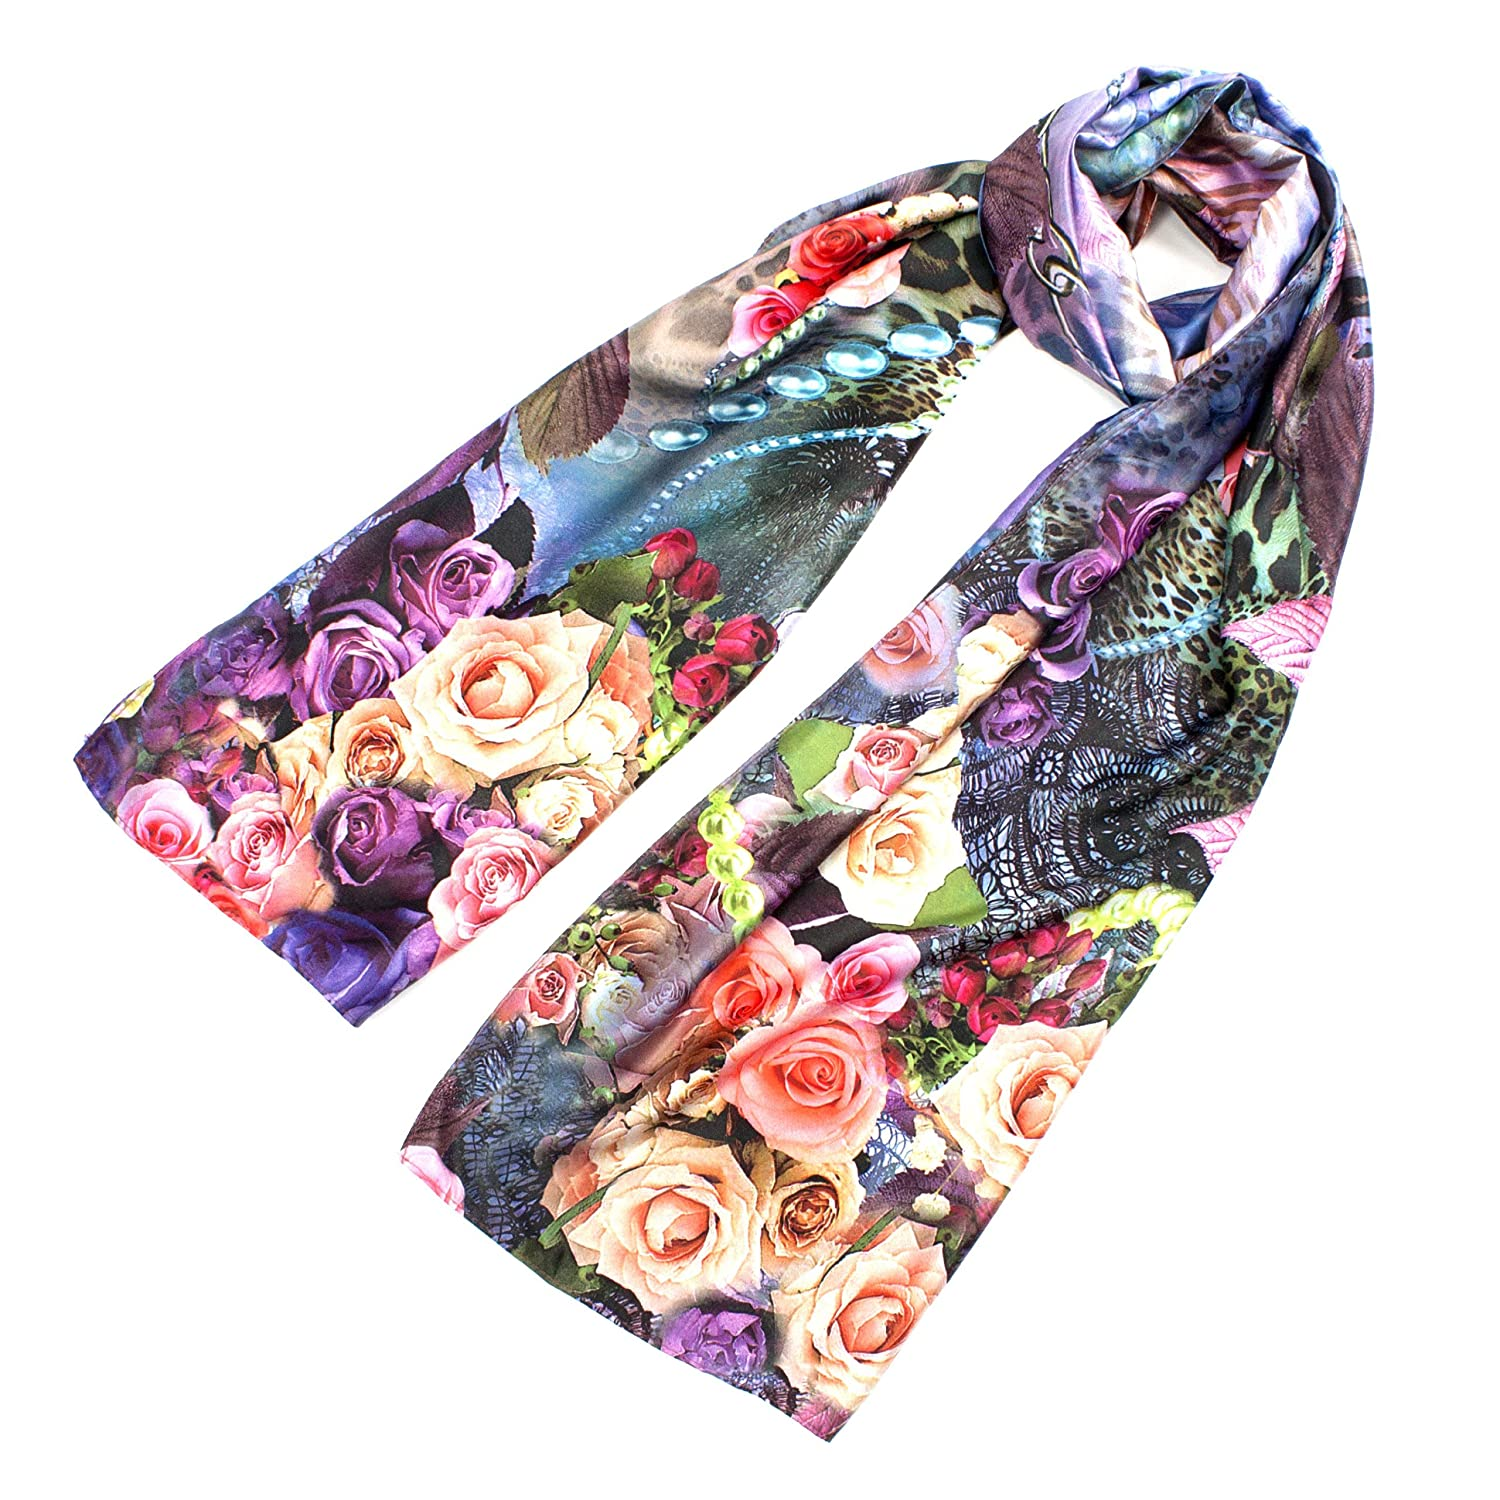 Leisureland Women's Silk Mixed Vintage Floral Rose Design Fashion Scarf